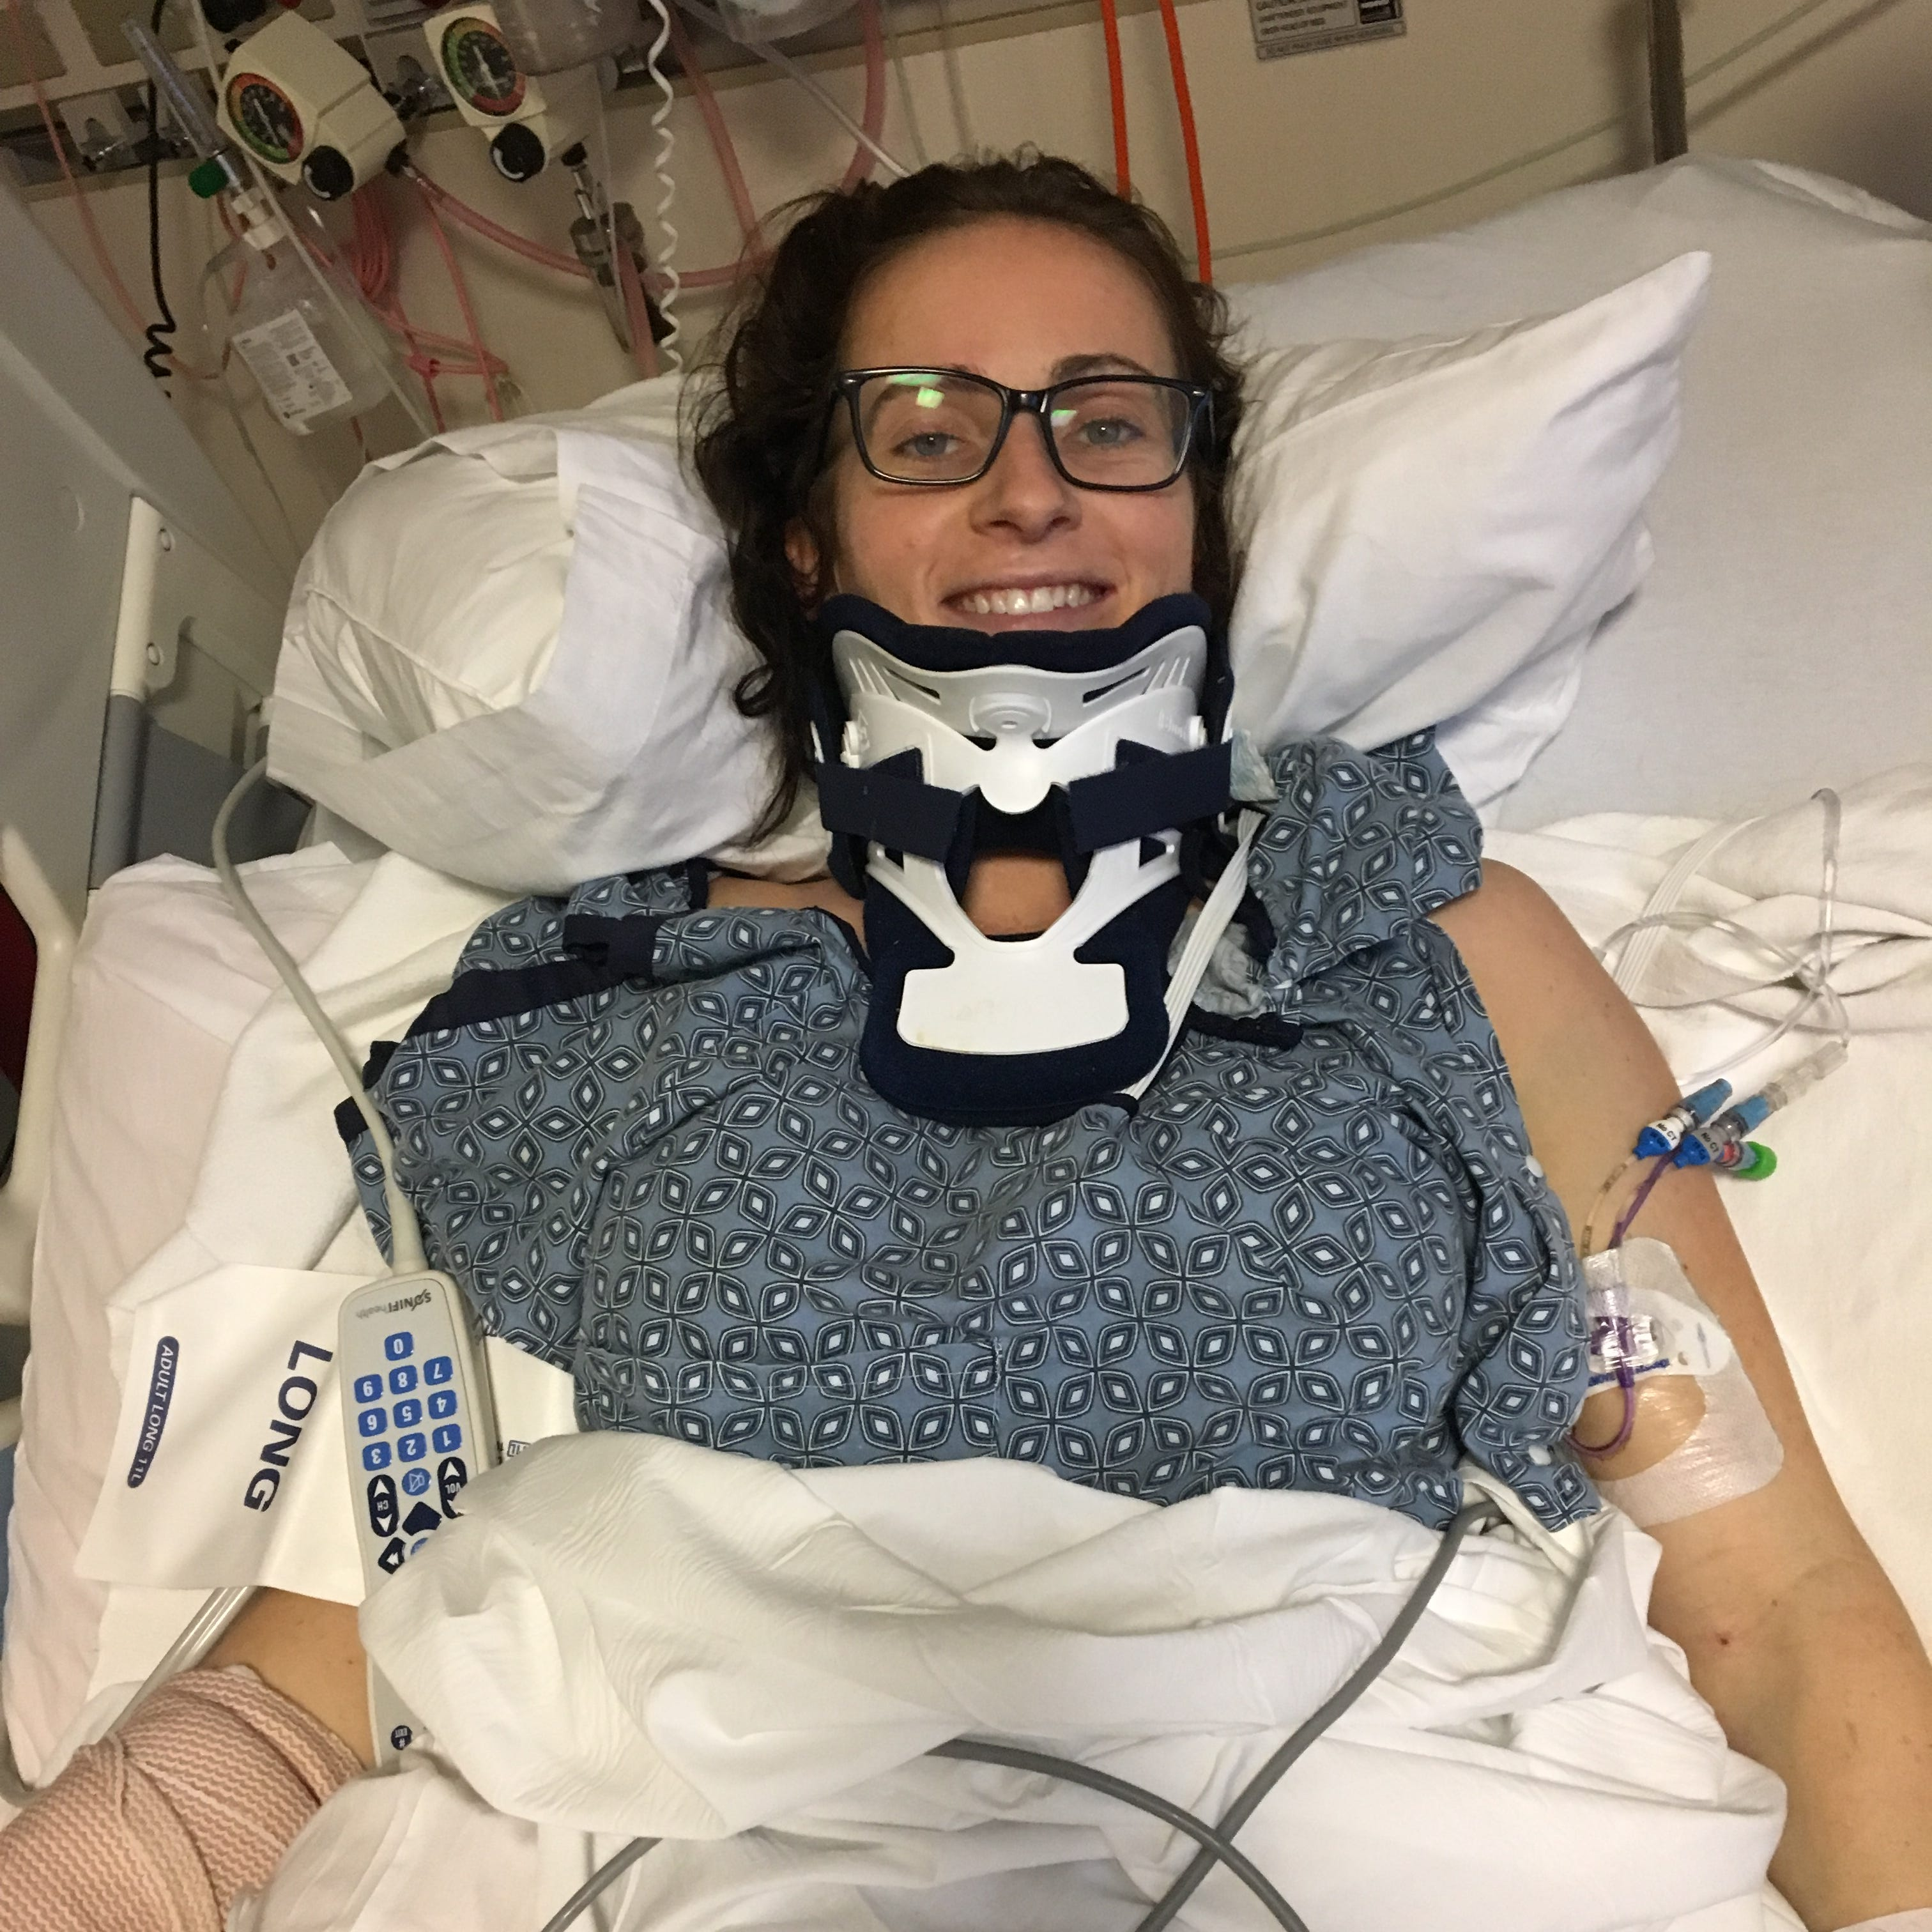 Hit by a drunk driver and left for dead: How Kelly Cass defied the odds